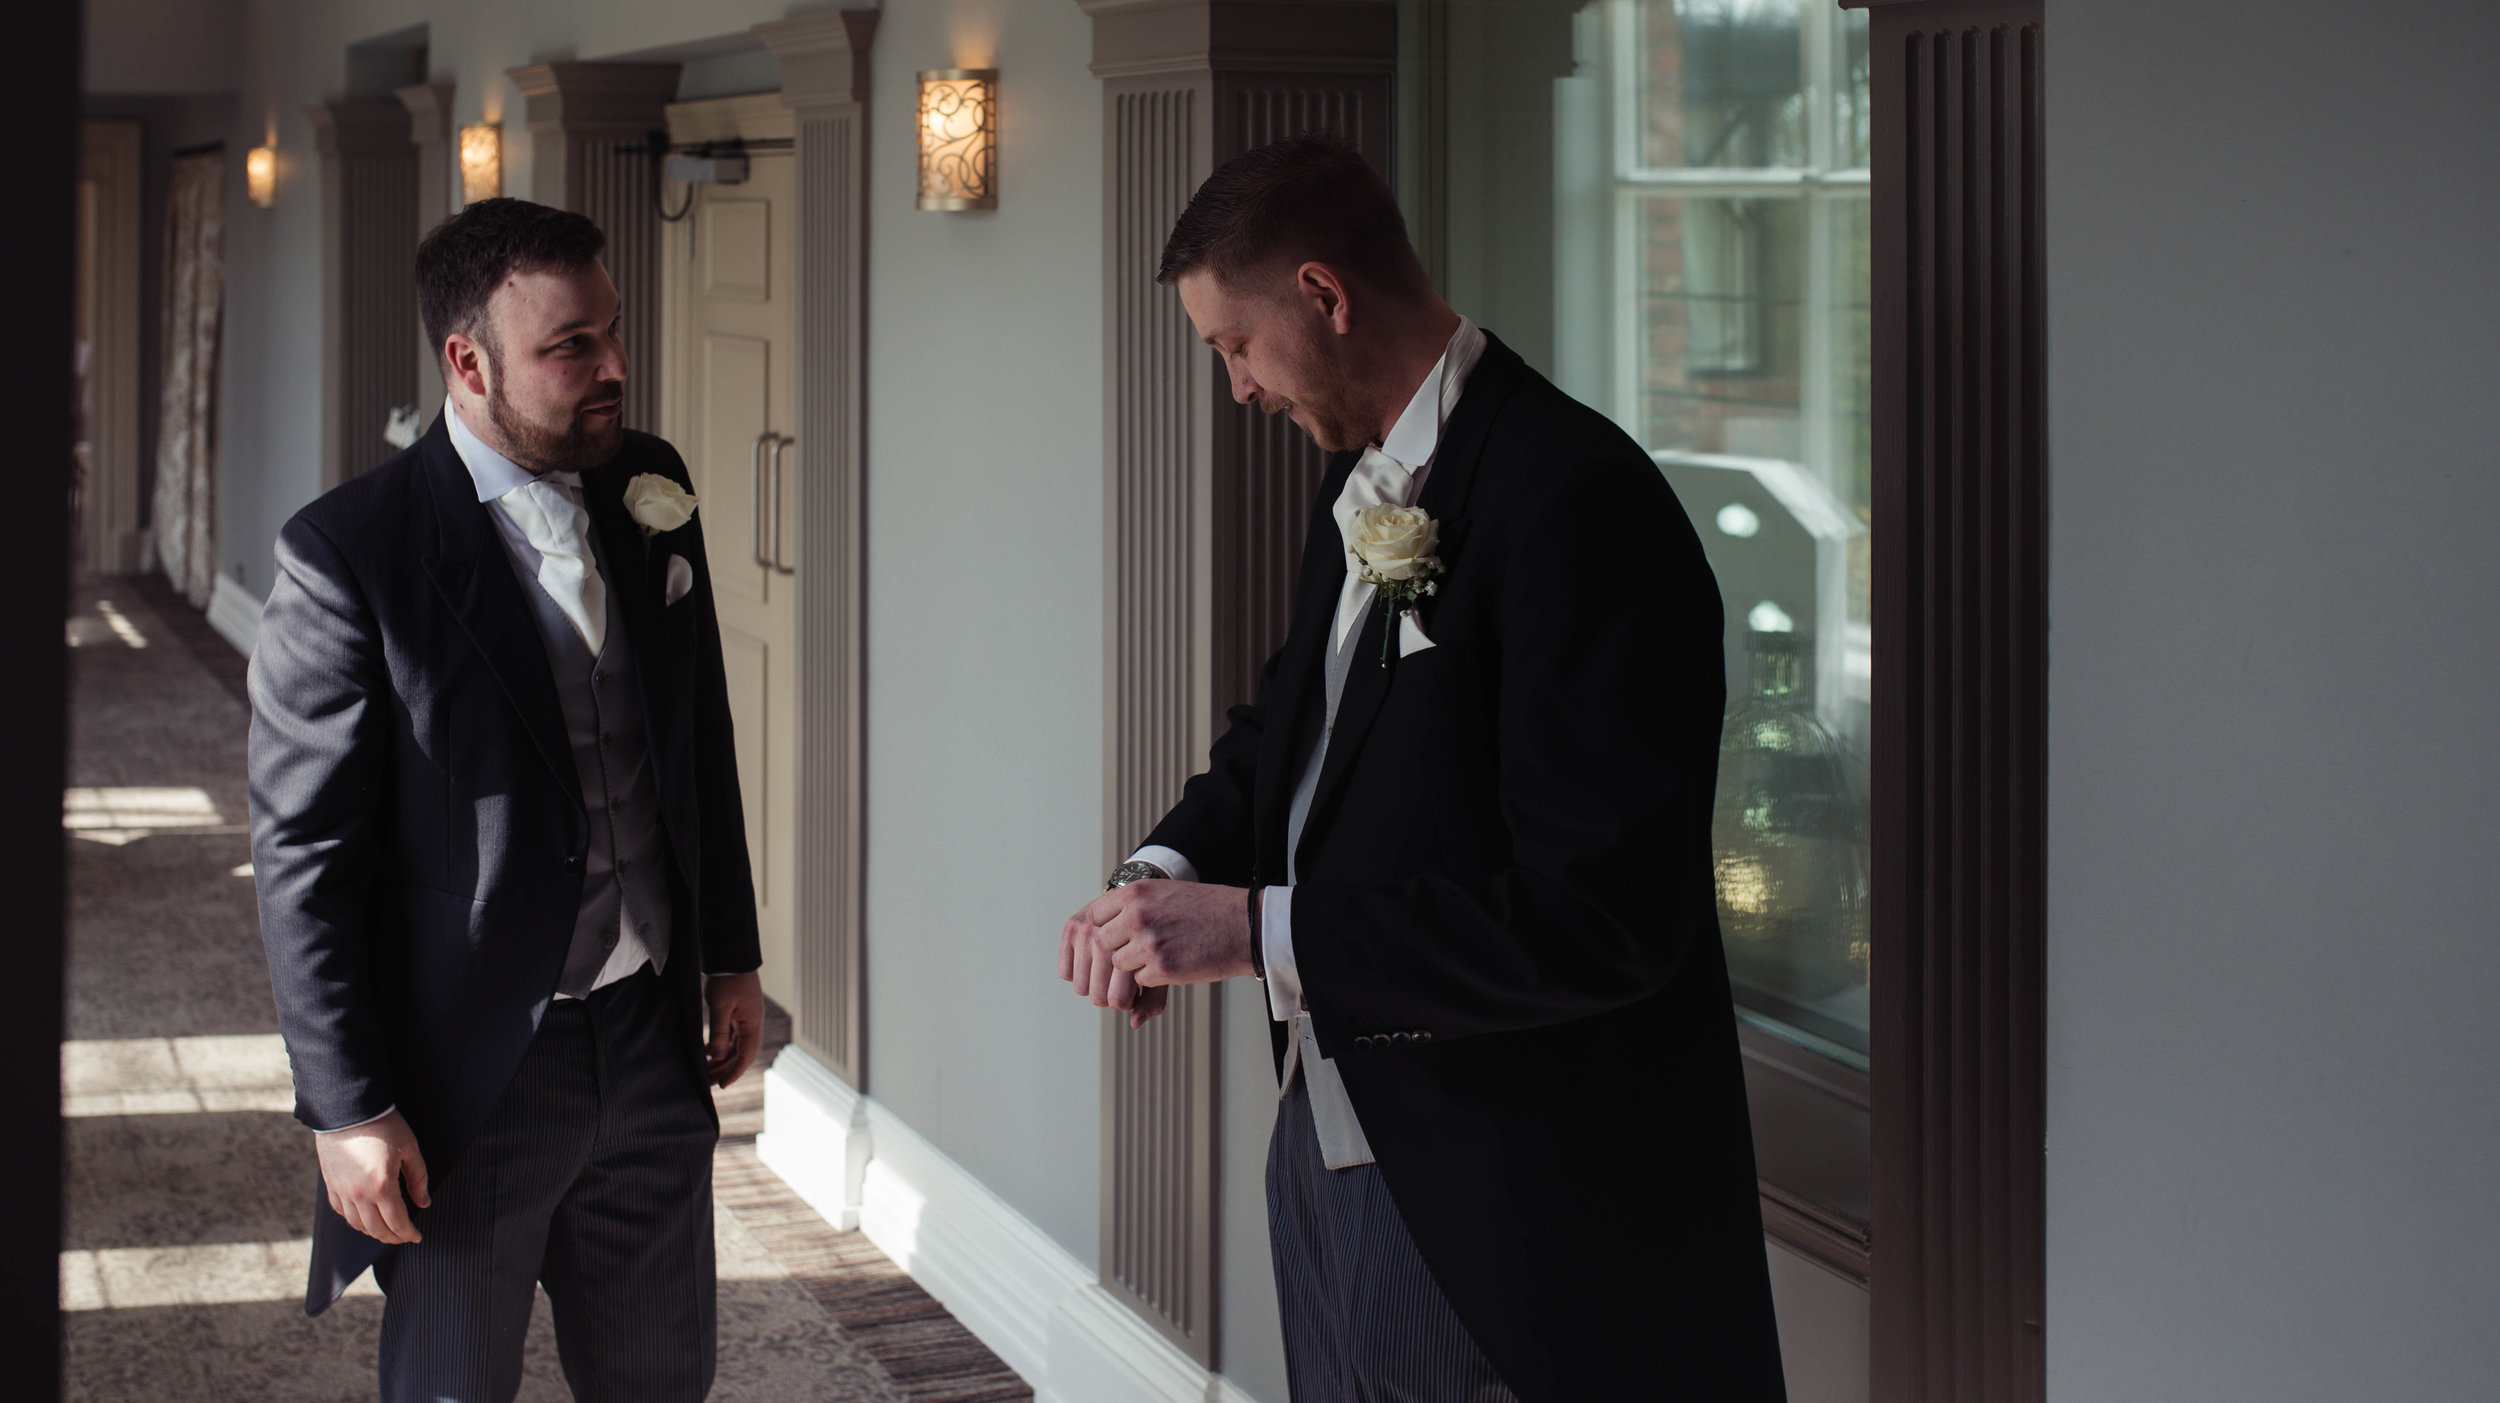 the best man gives the groom a watch as a present from his bride to be